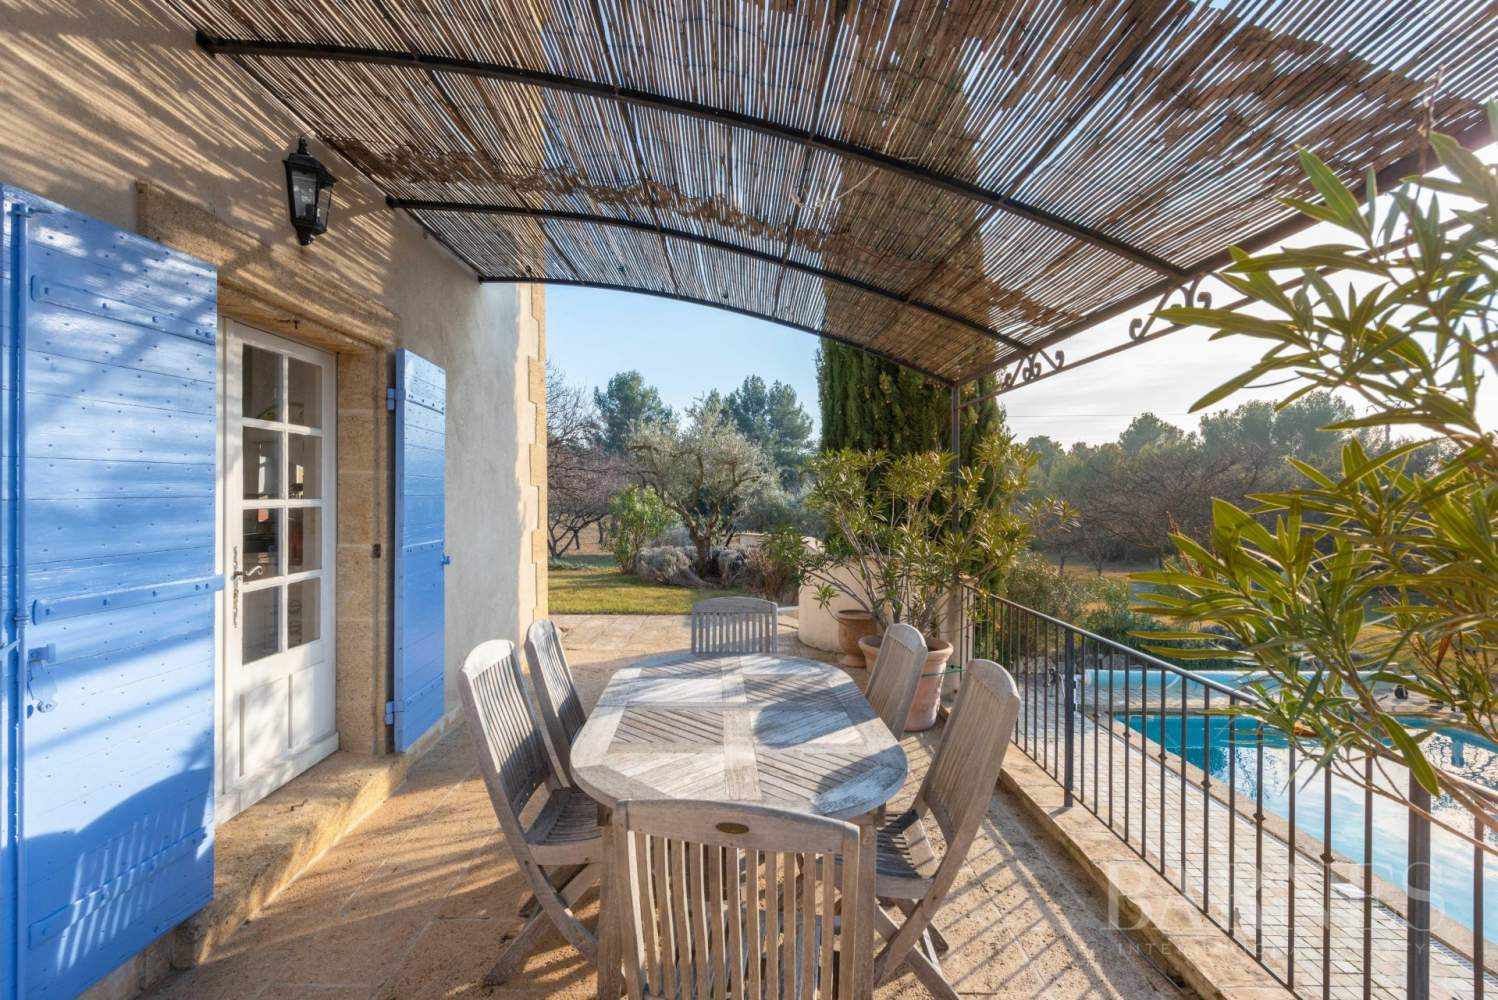 FOR SALE - AIX EN PROVENCE - ROGNES - PROVENCAL FARMHOUSE IN THE HEART OF A WOODED PARK picture 8